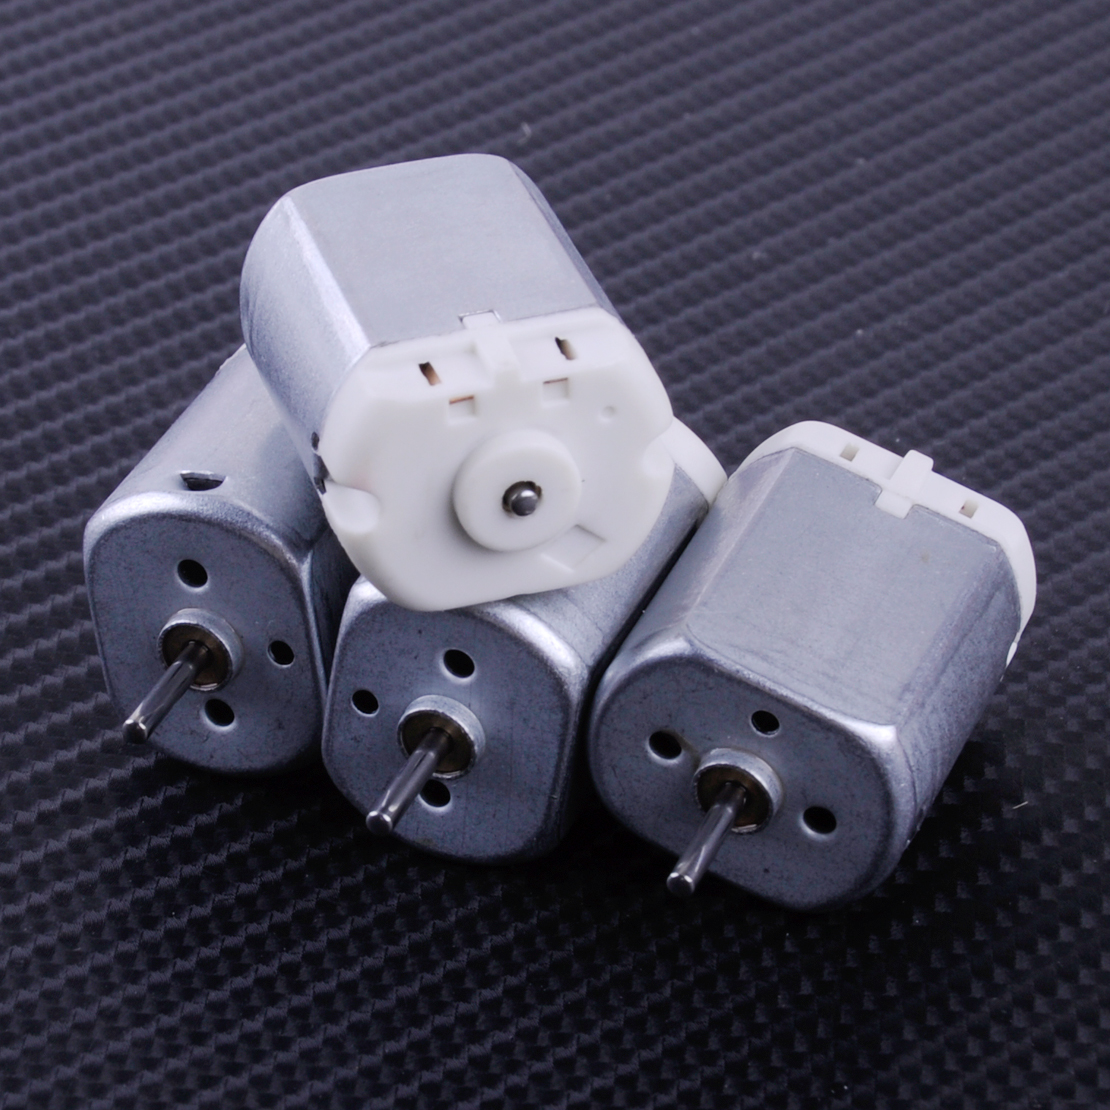 DWCX 4Pcs 10mm 12V Shaft Door Lock Motor Fit For Mabuchi Lexus Honda Toyota FC280PC 22125 KF243G-101